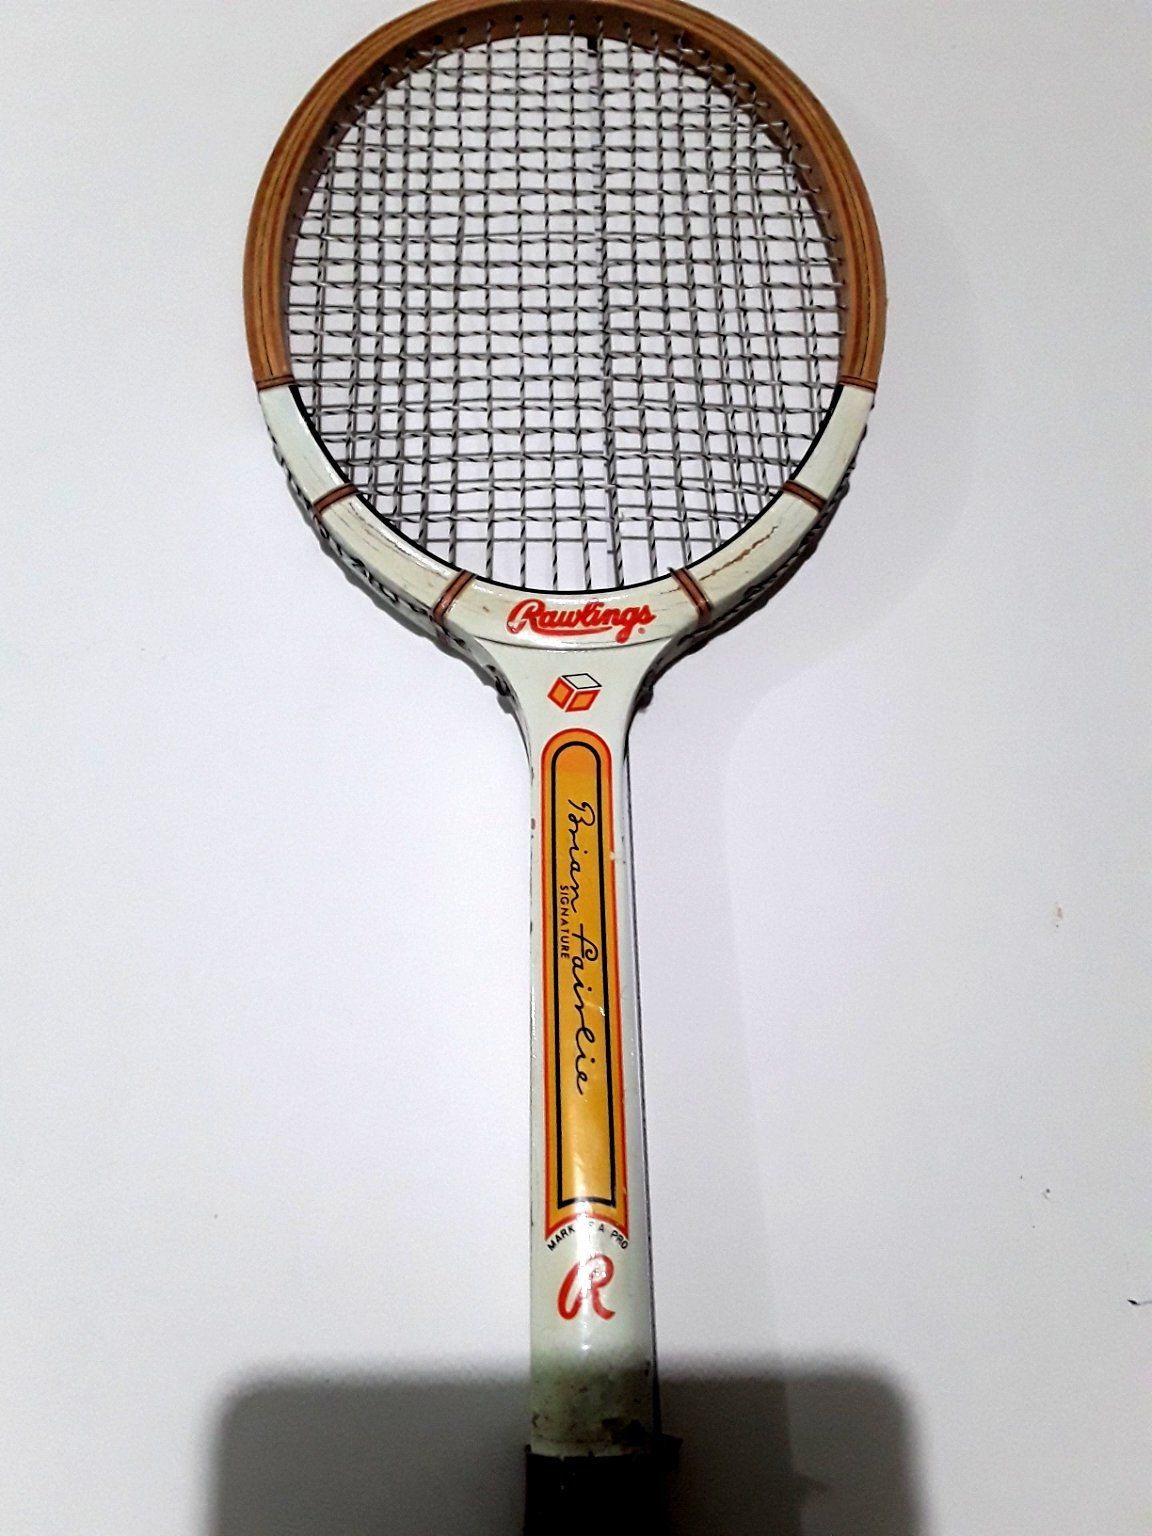 Rawlings Brian Fairlie Vintage Wood Tennis Racquet 60s 70s 4 1 2 New Zealand Philadelphia Freedom By Fchoicevintage On Vintage Tennis Tennis World Team Tennis